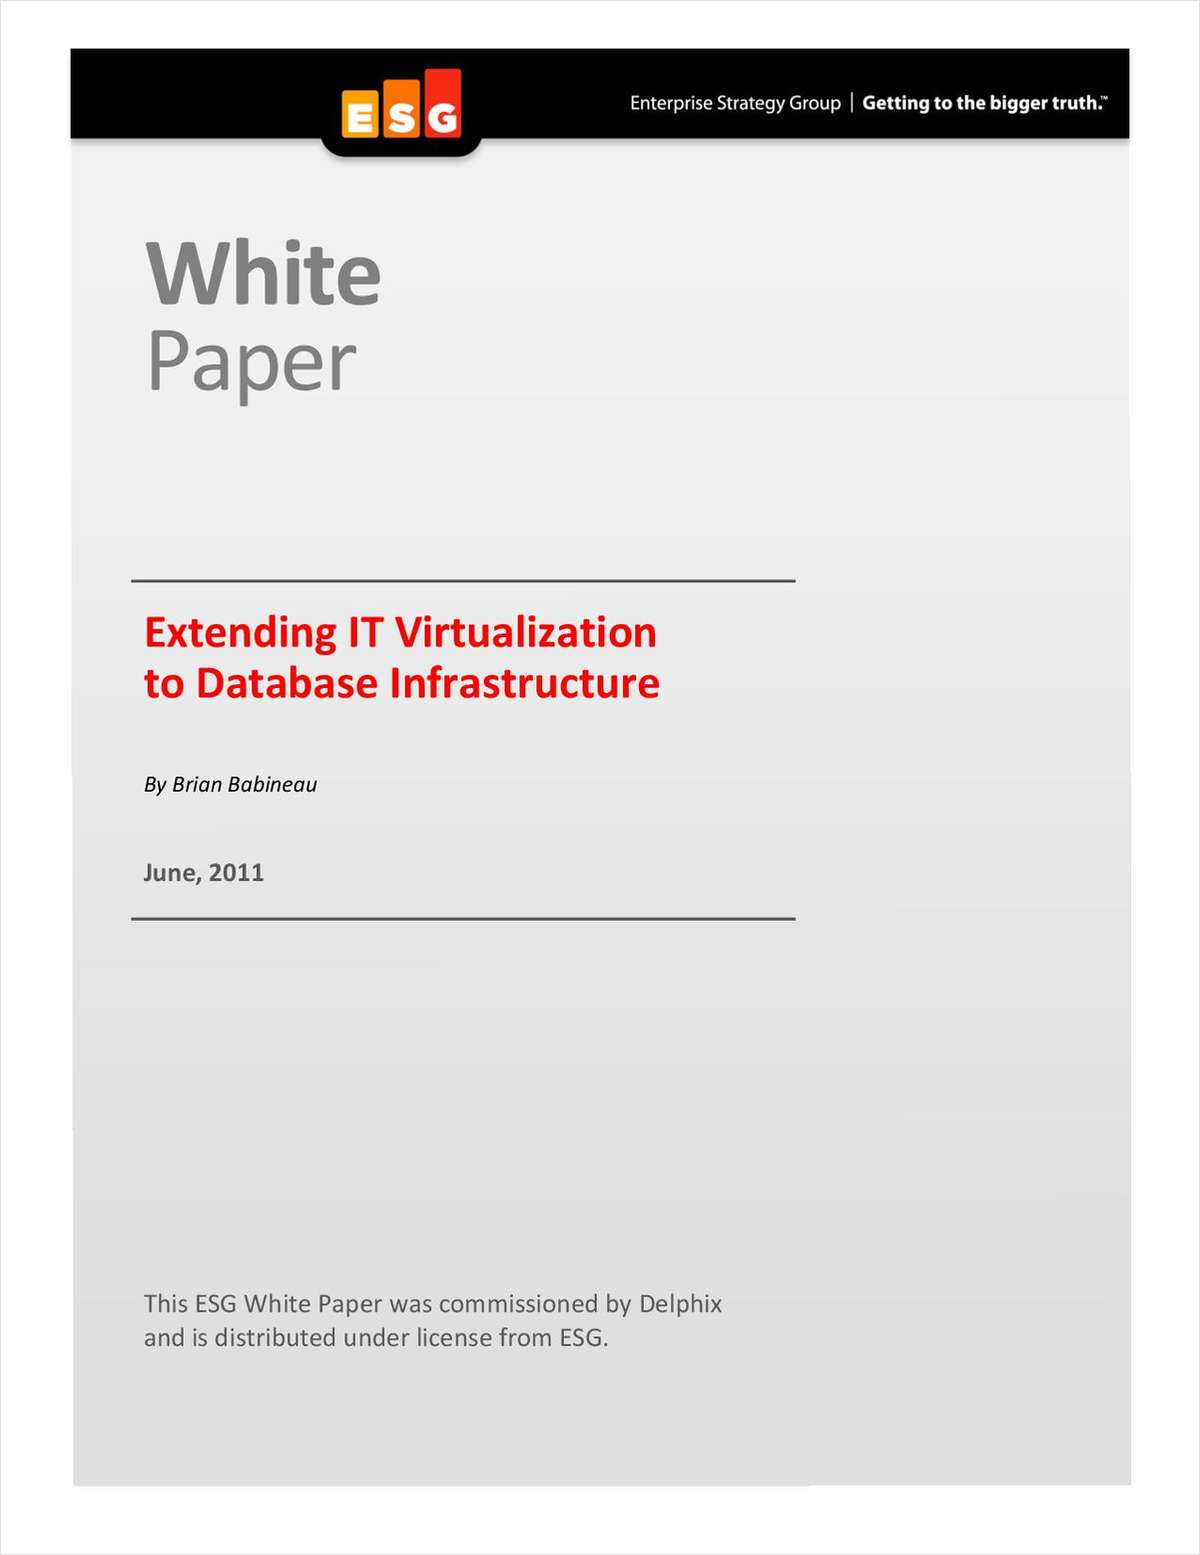 Extending IT Virtualization to Oracle Database Infrastructure